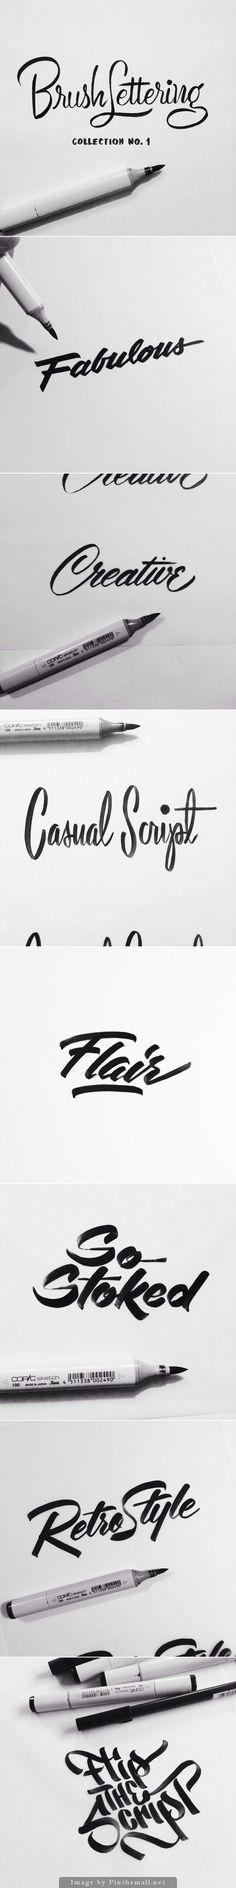 Brush Lettering Collection No. 1 is an exploration of achieving different brush script lettering styles using one writing instrument - a Copic Sketch marker   Designer: Neil Secretario